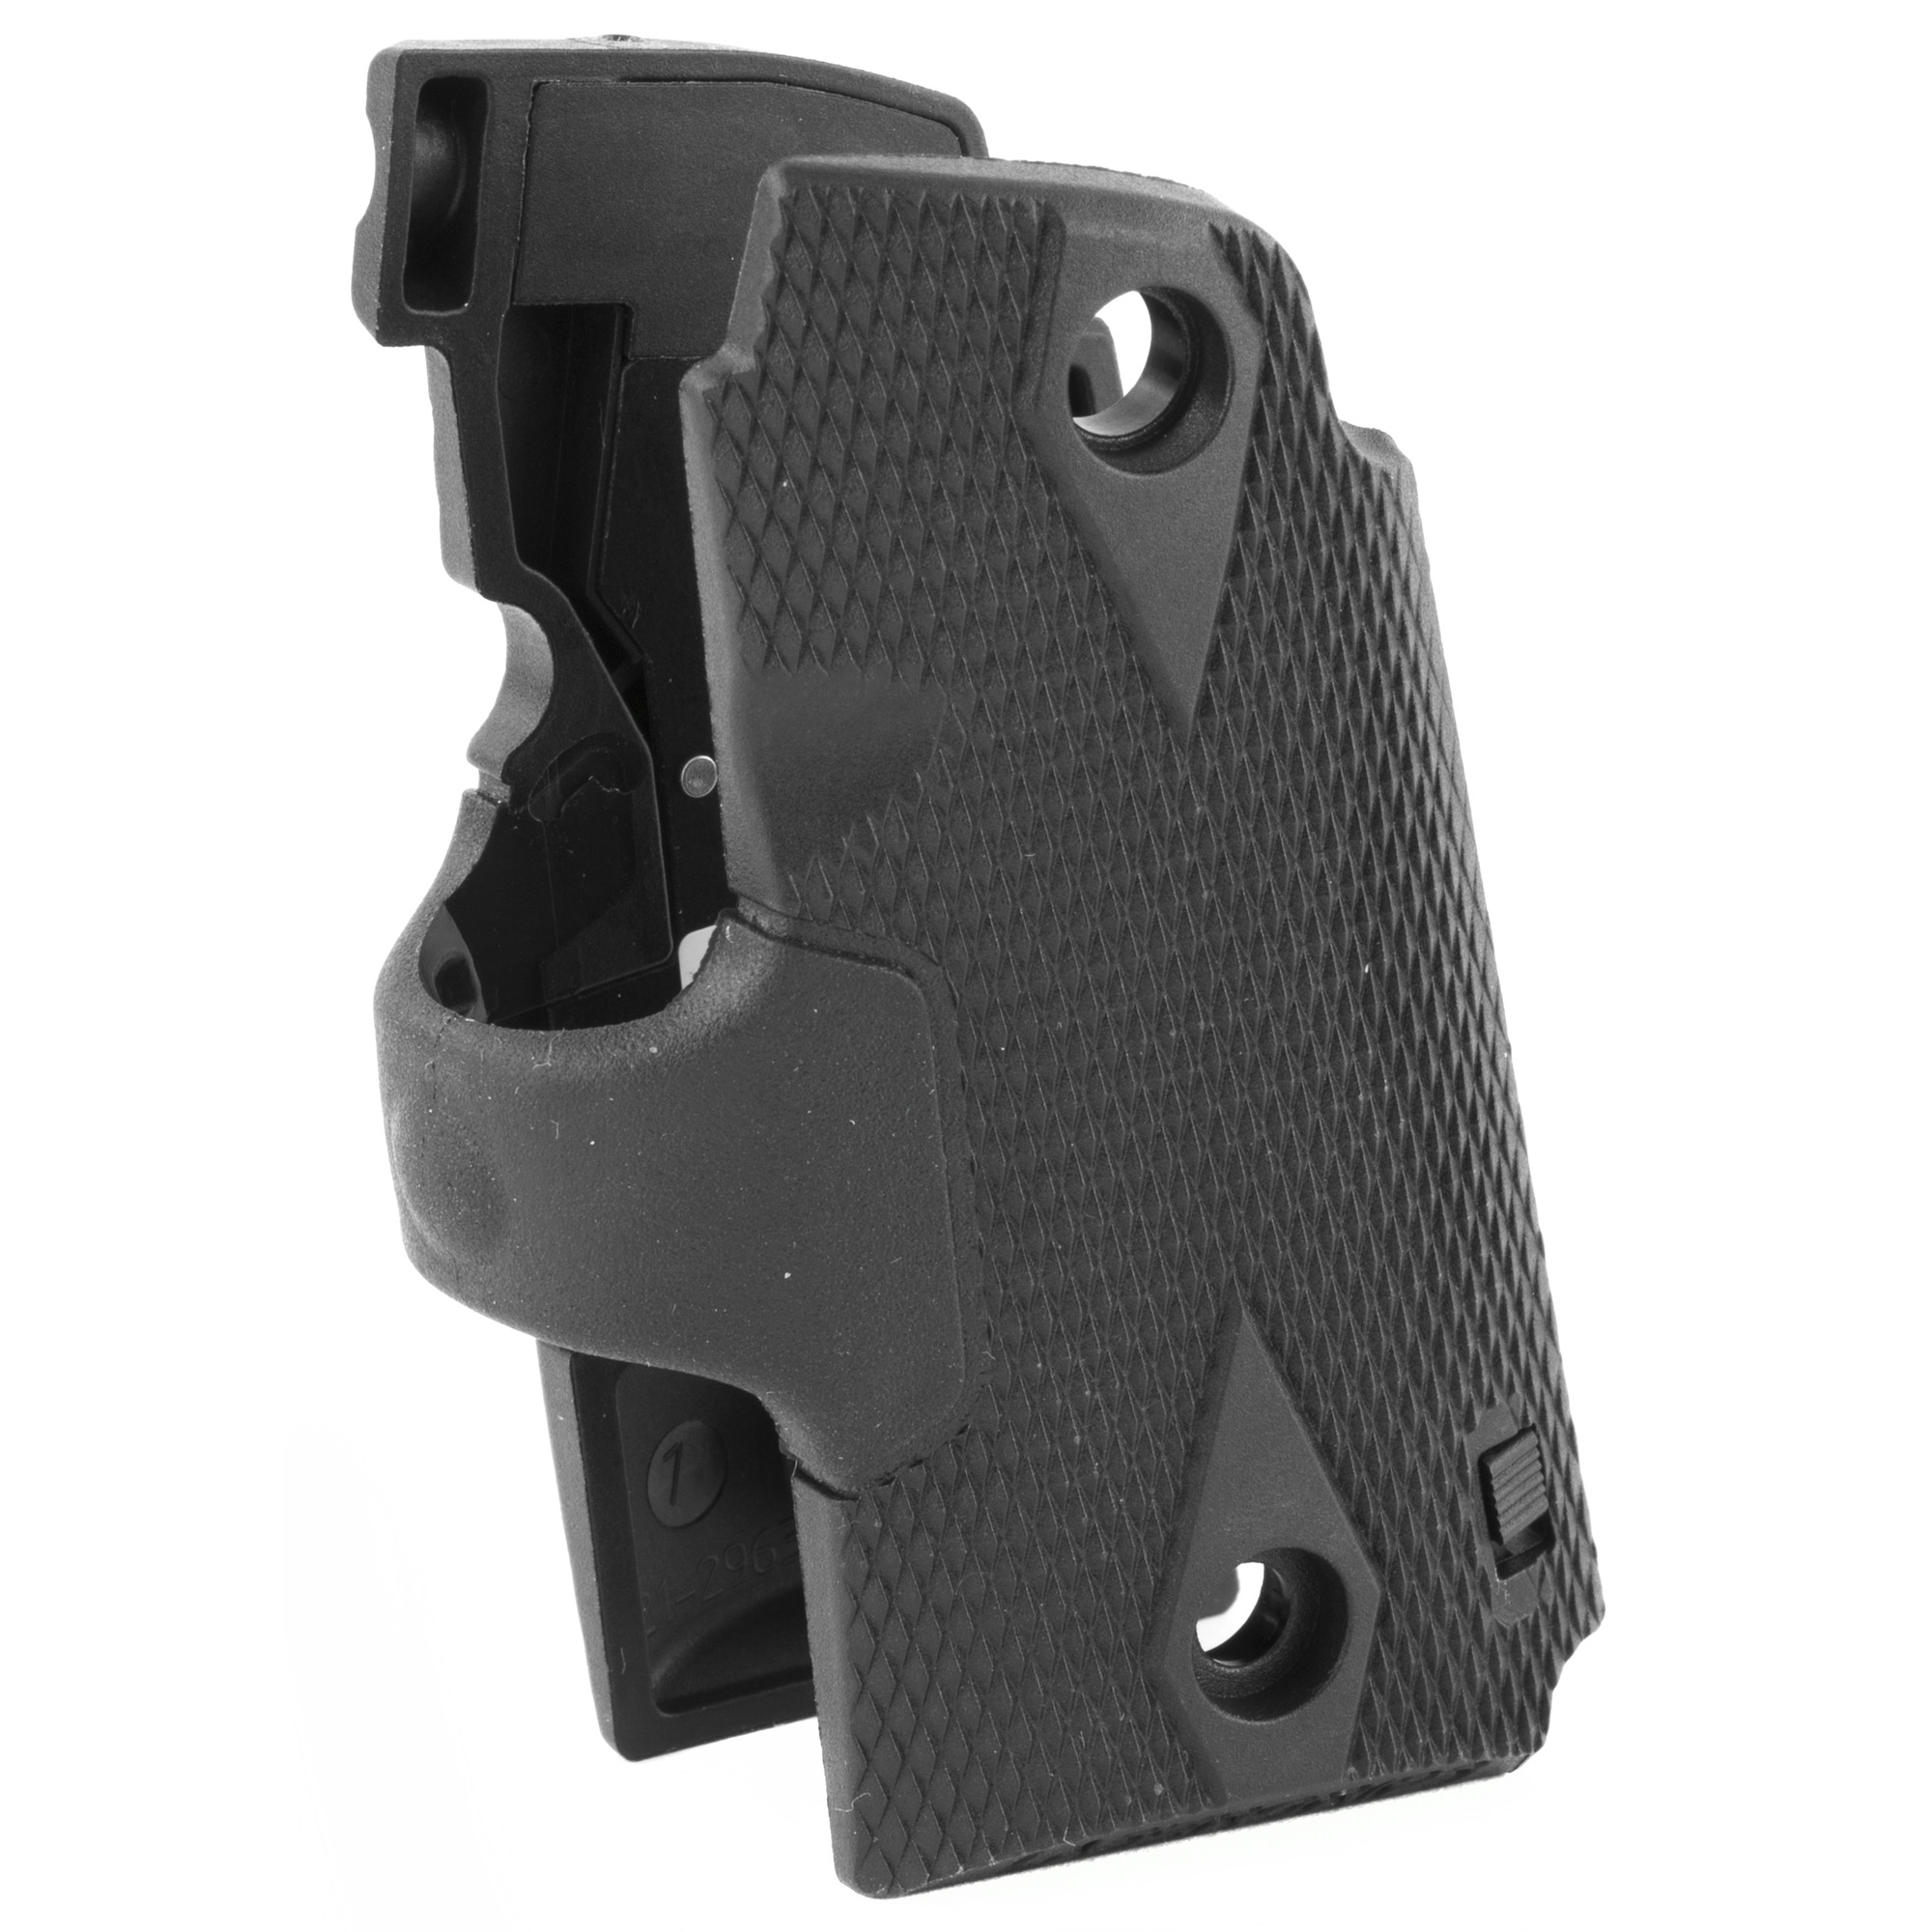 """LG-409 Lasergrips(R) are the ultimate laser sight for one of the finest concealed carry handguns available - the Kimber Micro 9. Among our slimmest Lasergrips(R) ever"""" the LG-409 features a rubber overmold front activation pad fused with durable polymer grips. User-installed in minutes"""" Lasergrips enhance the defensive capabilities of the compact Micro line of pistols. This model is specifically designed for Micro 9mm models. Please see model LG-478 for Micro .380 models."""